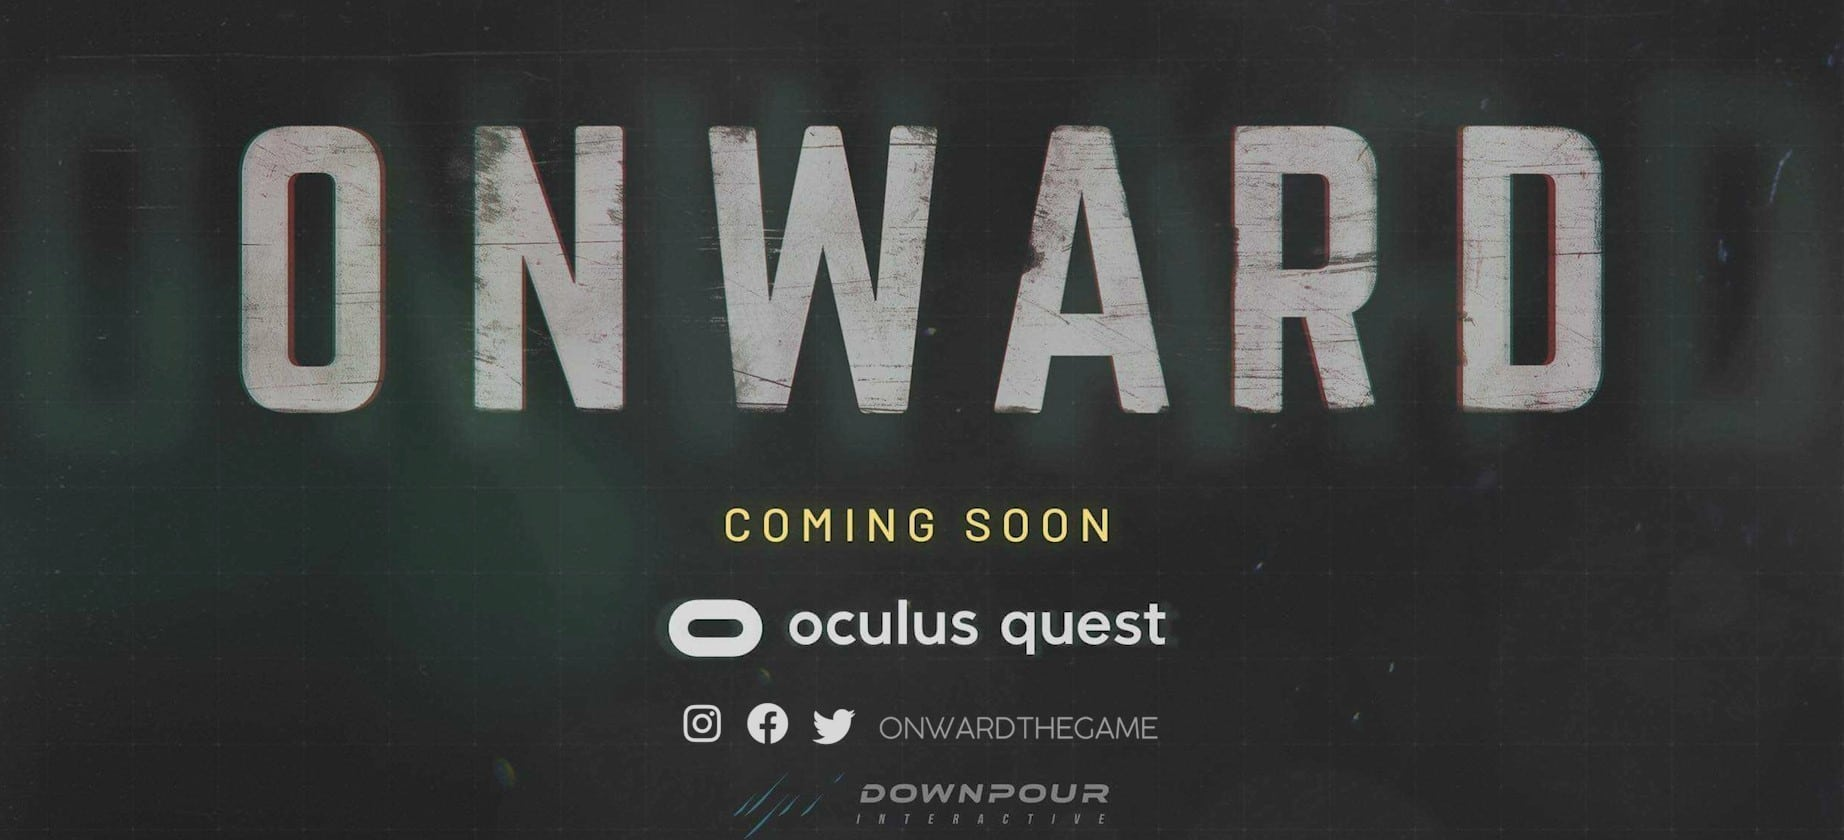 onward oculus quest coming soon image